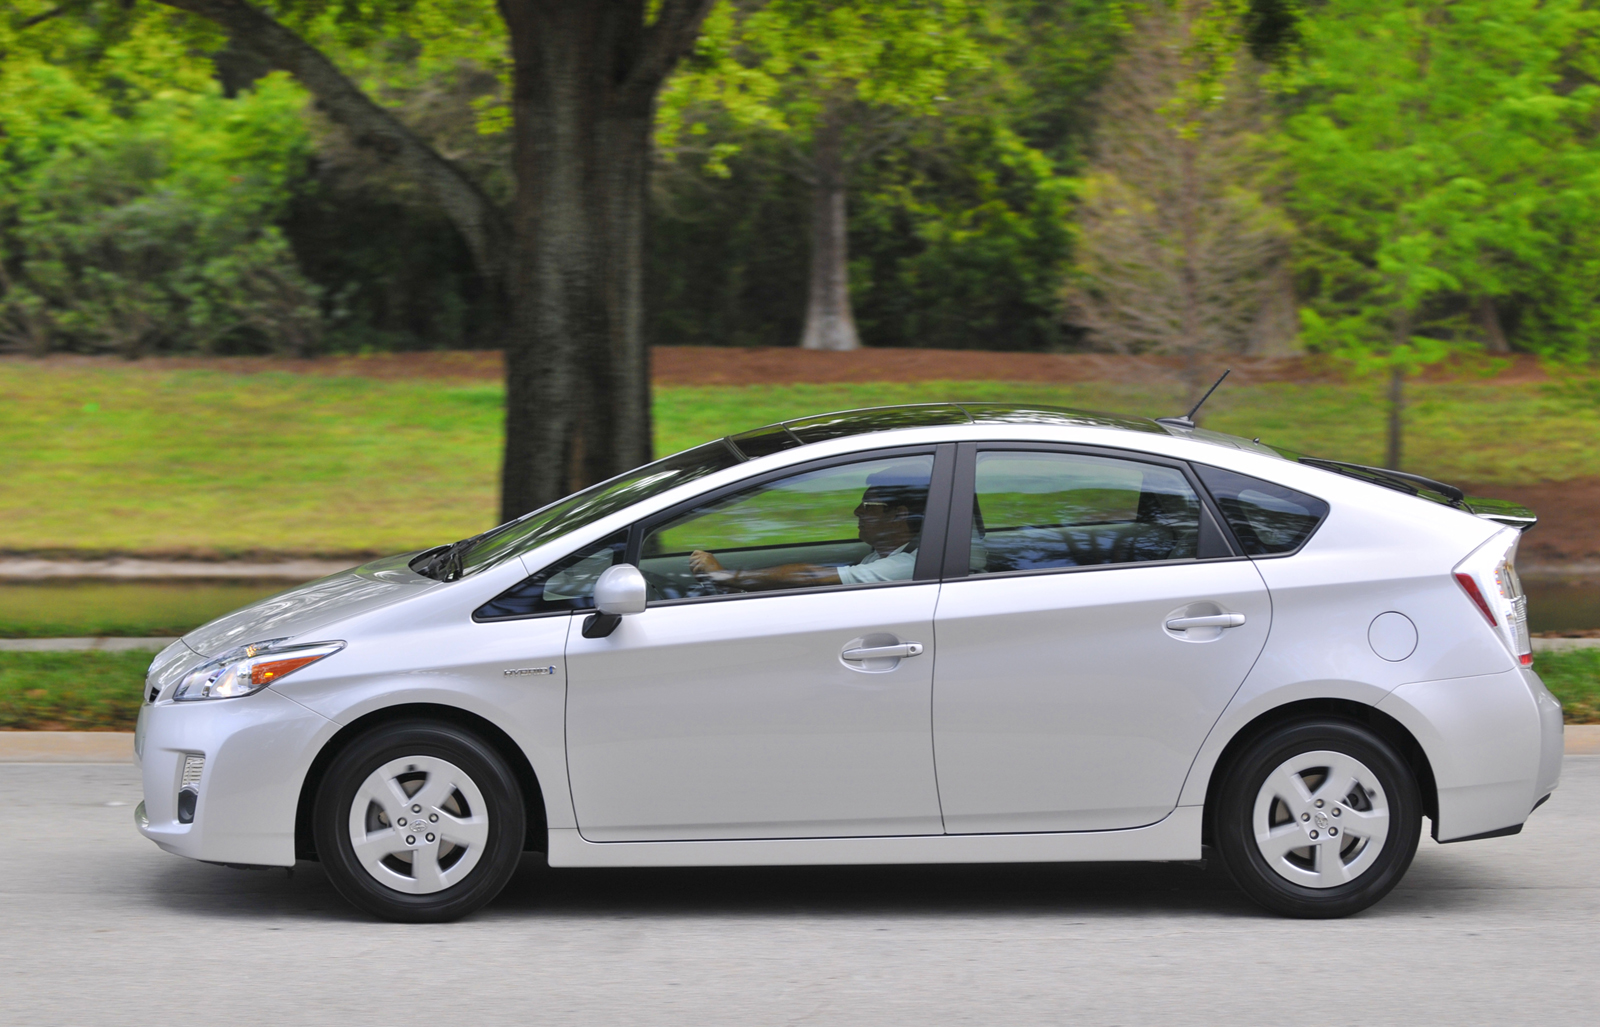 Mercedes Benz Denver >> 2010 Toyota Prius Review, Ratings, Specs, Prices, and ...